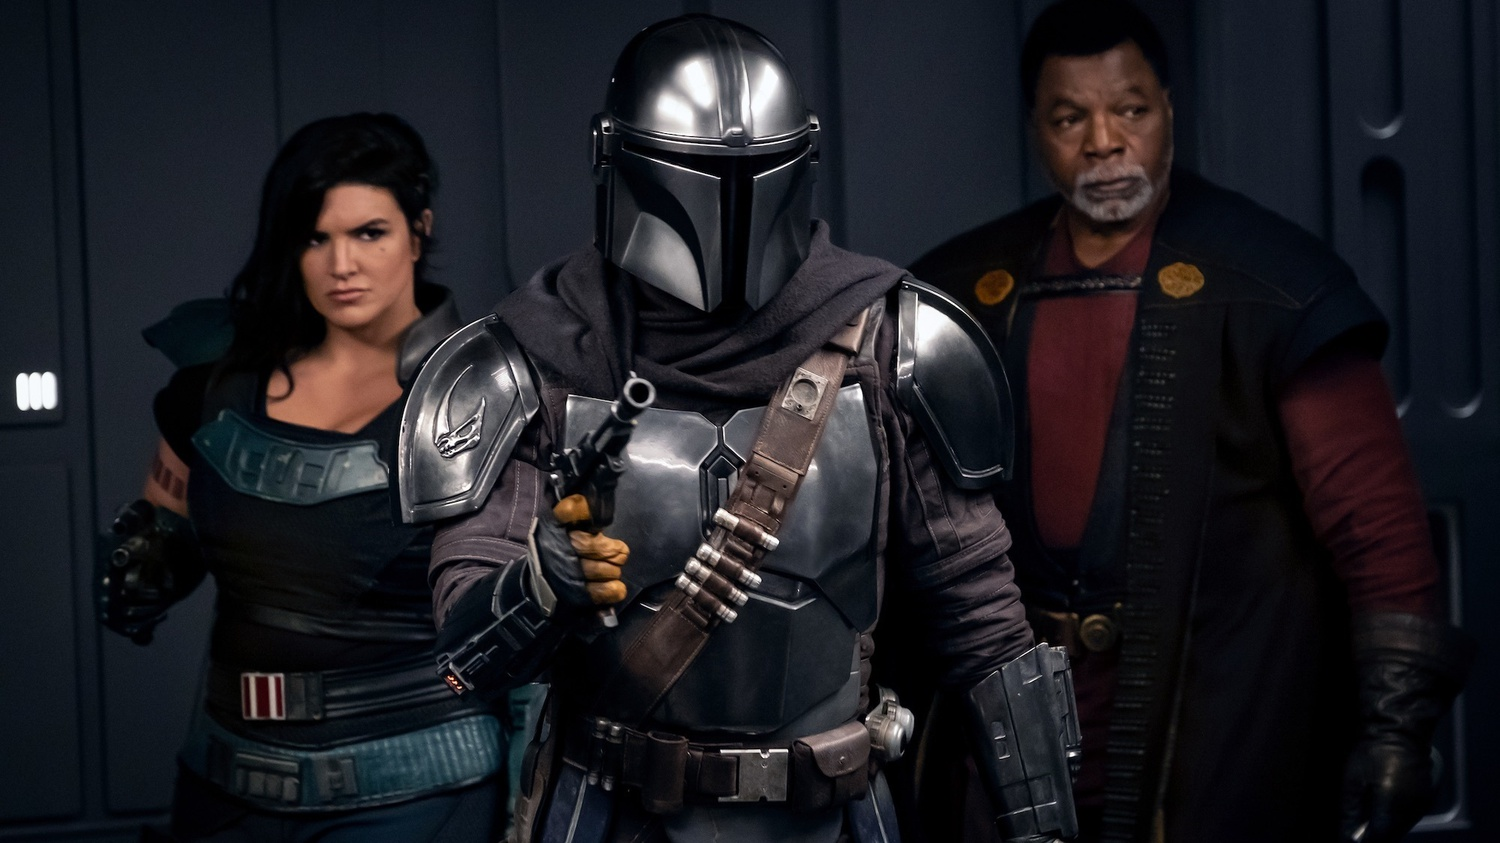 Gina Carano is Cara Dune, Pedro Pascal is the Mandalorian, and Carl Weathers is Greef Karga in Season Two of 'The Mandalorian,' premiering on Oct. 30.